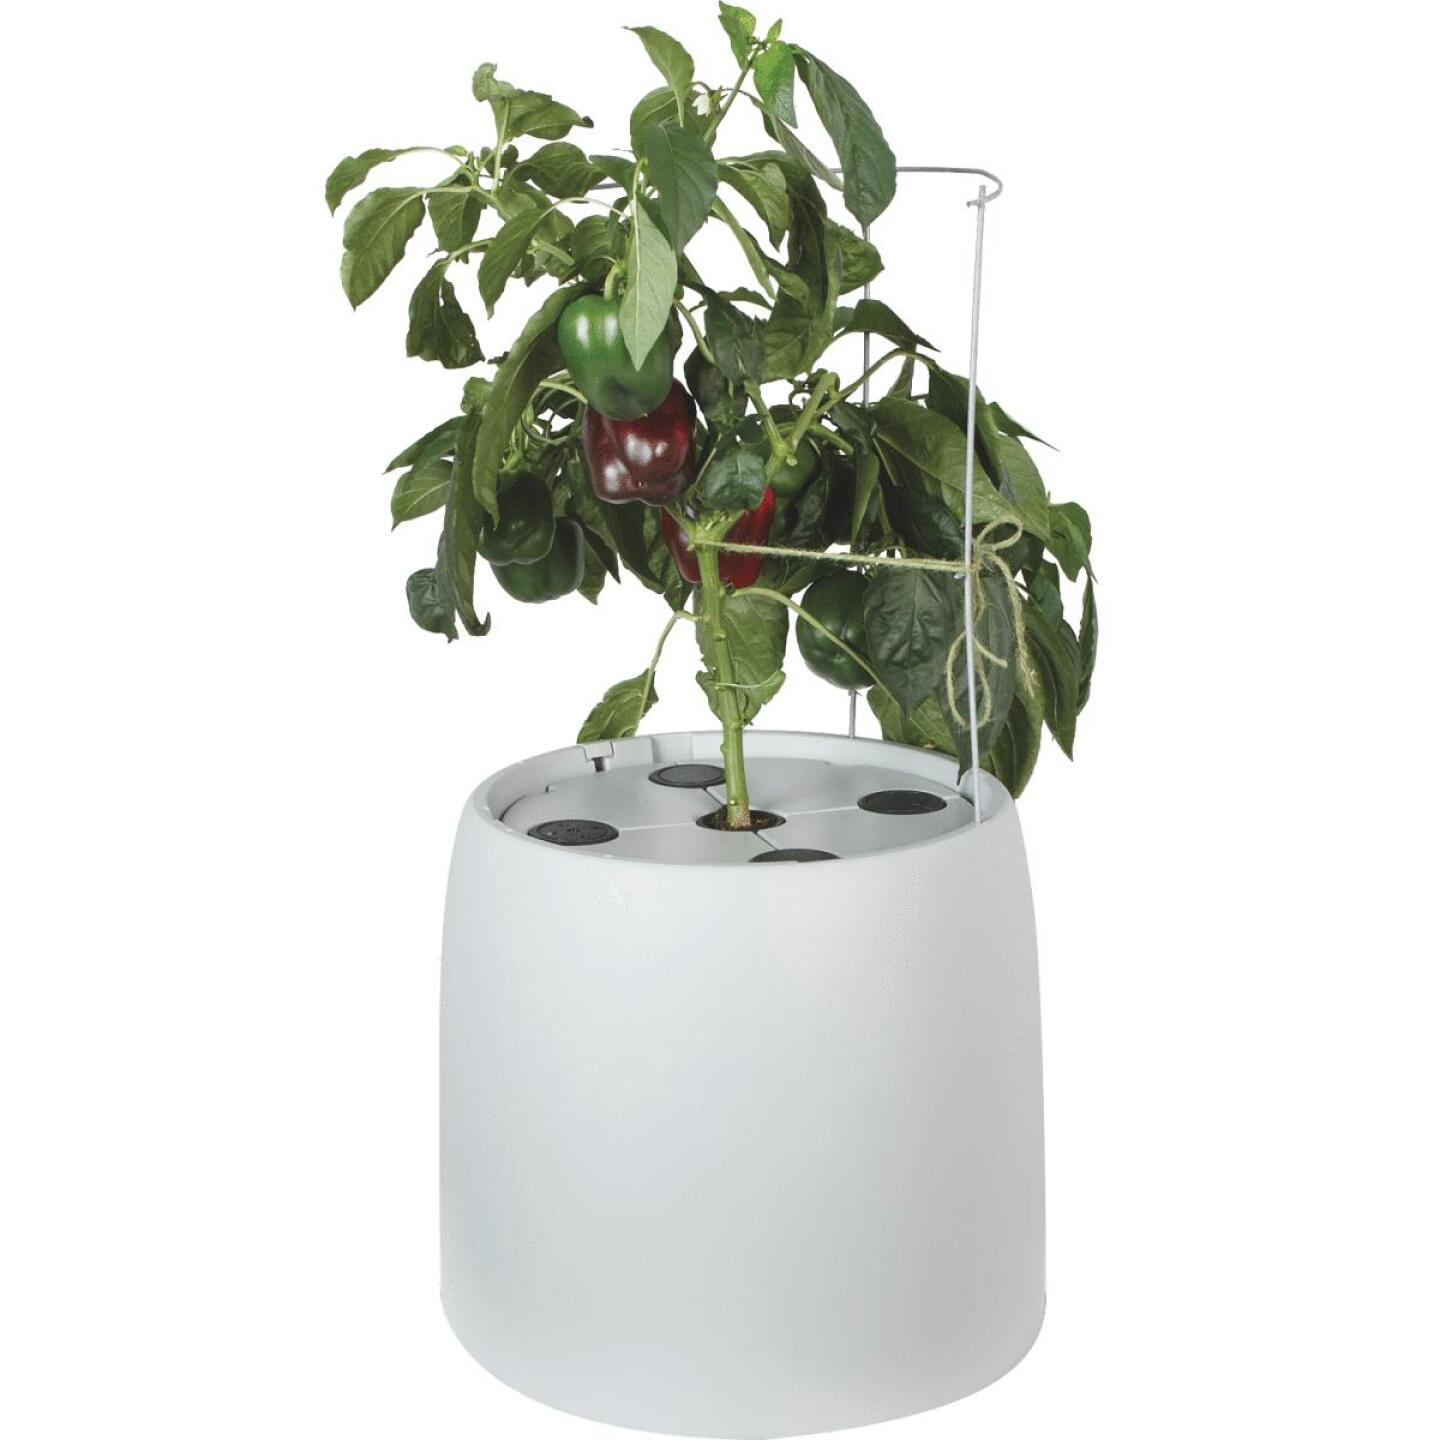 Root Farm 6 Gal. Hydroponic Growing System Image 1